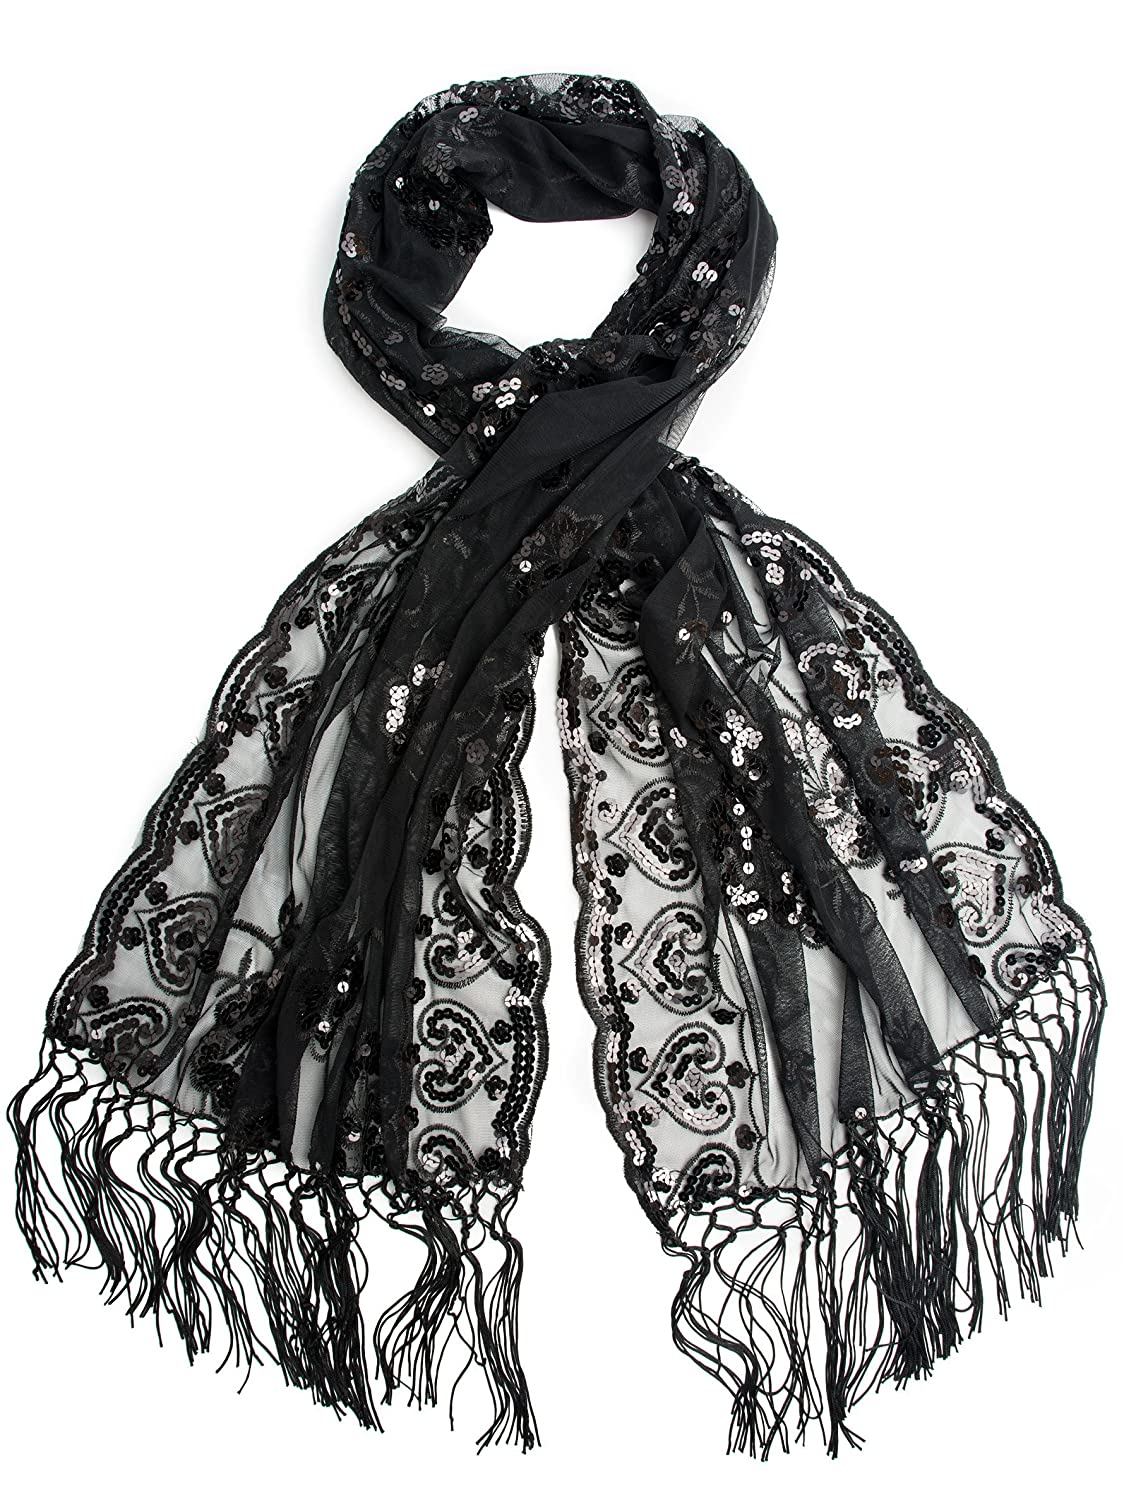 1920s Shawls, Scarves and Evening Jacket Tips Black Madison Shawl Long Fringe Sequin Evening Wrap $14.95 AT vintagedancer.com